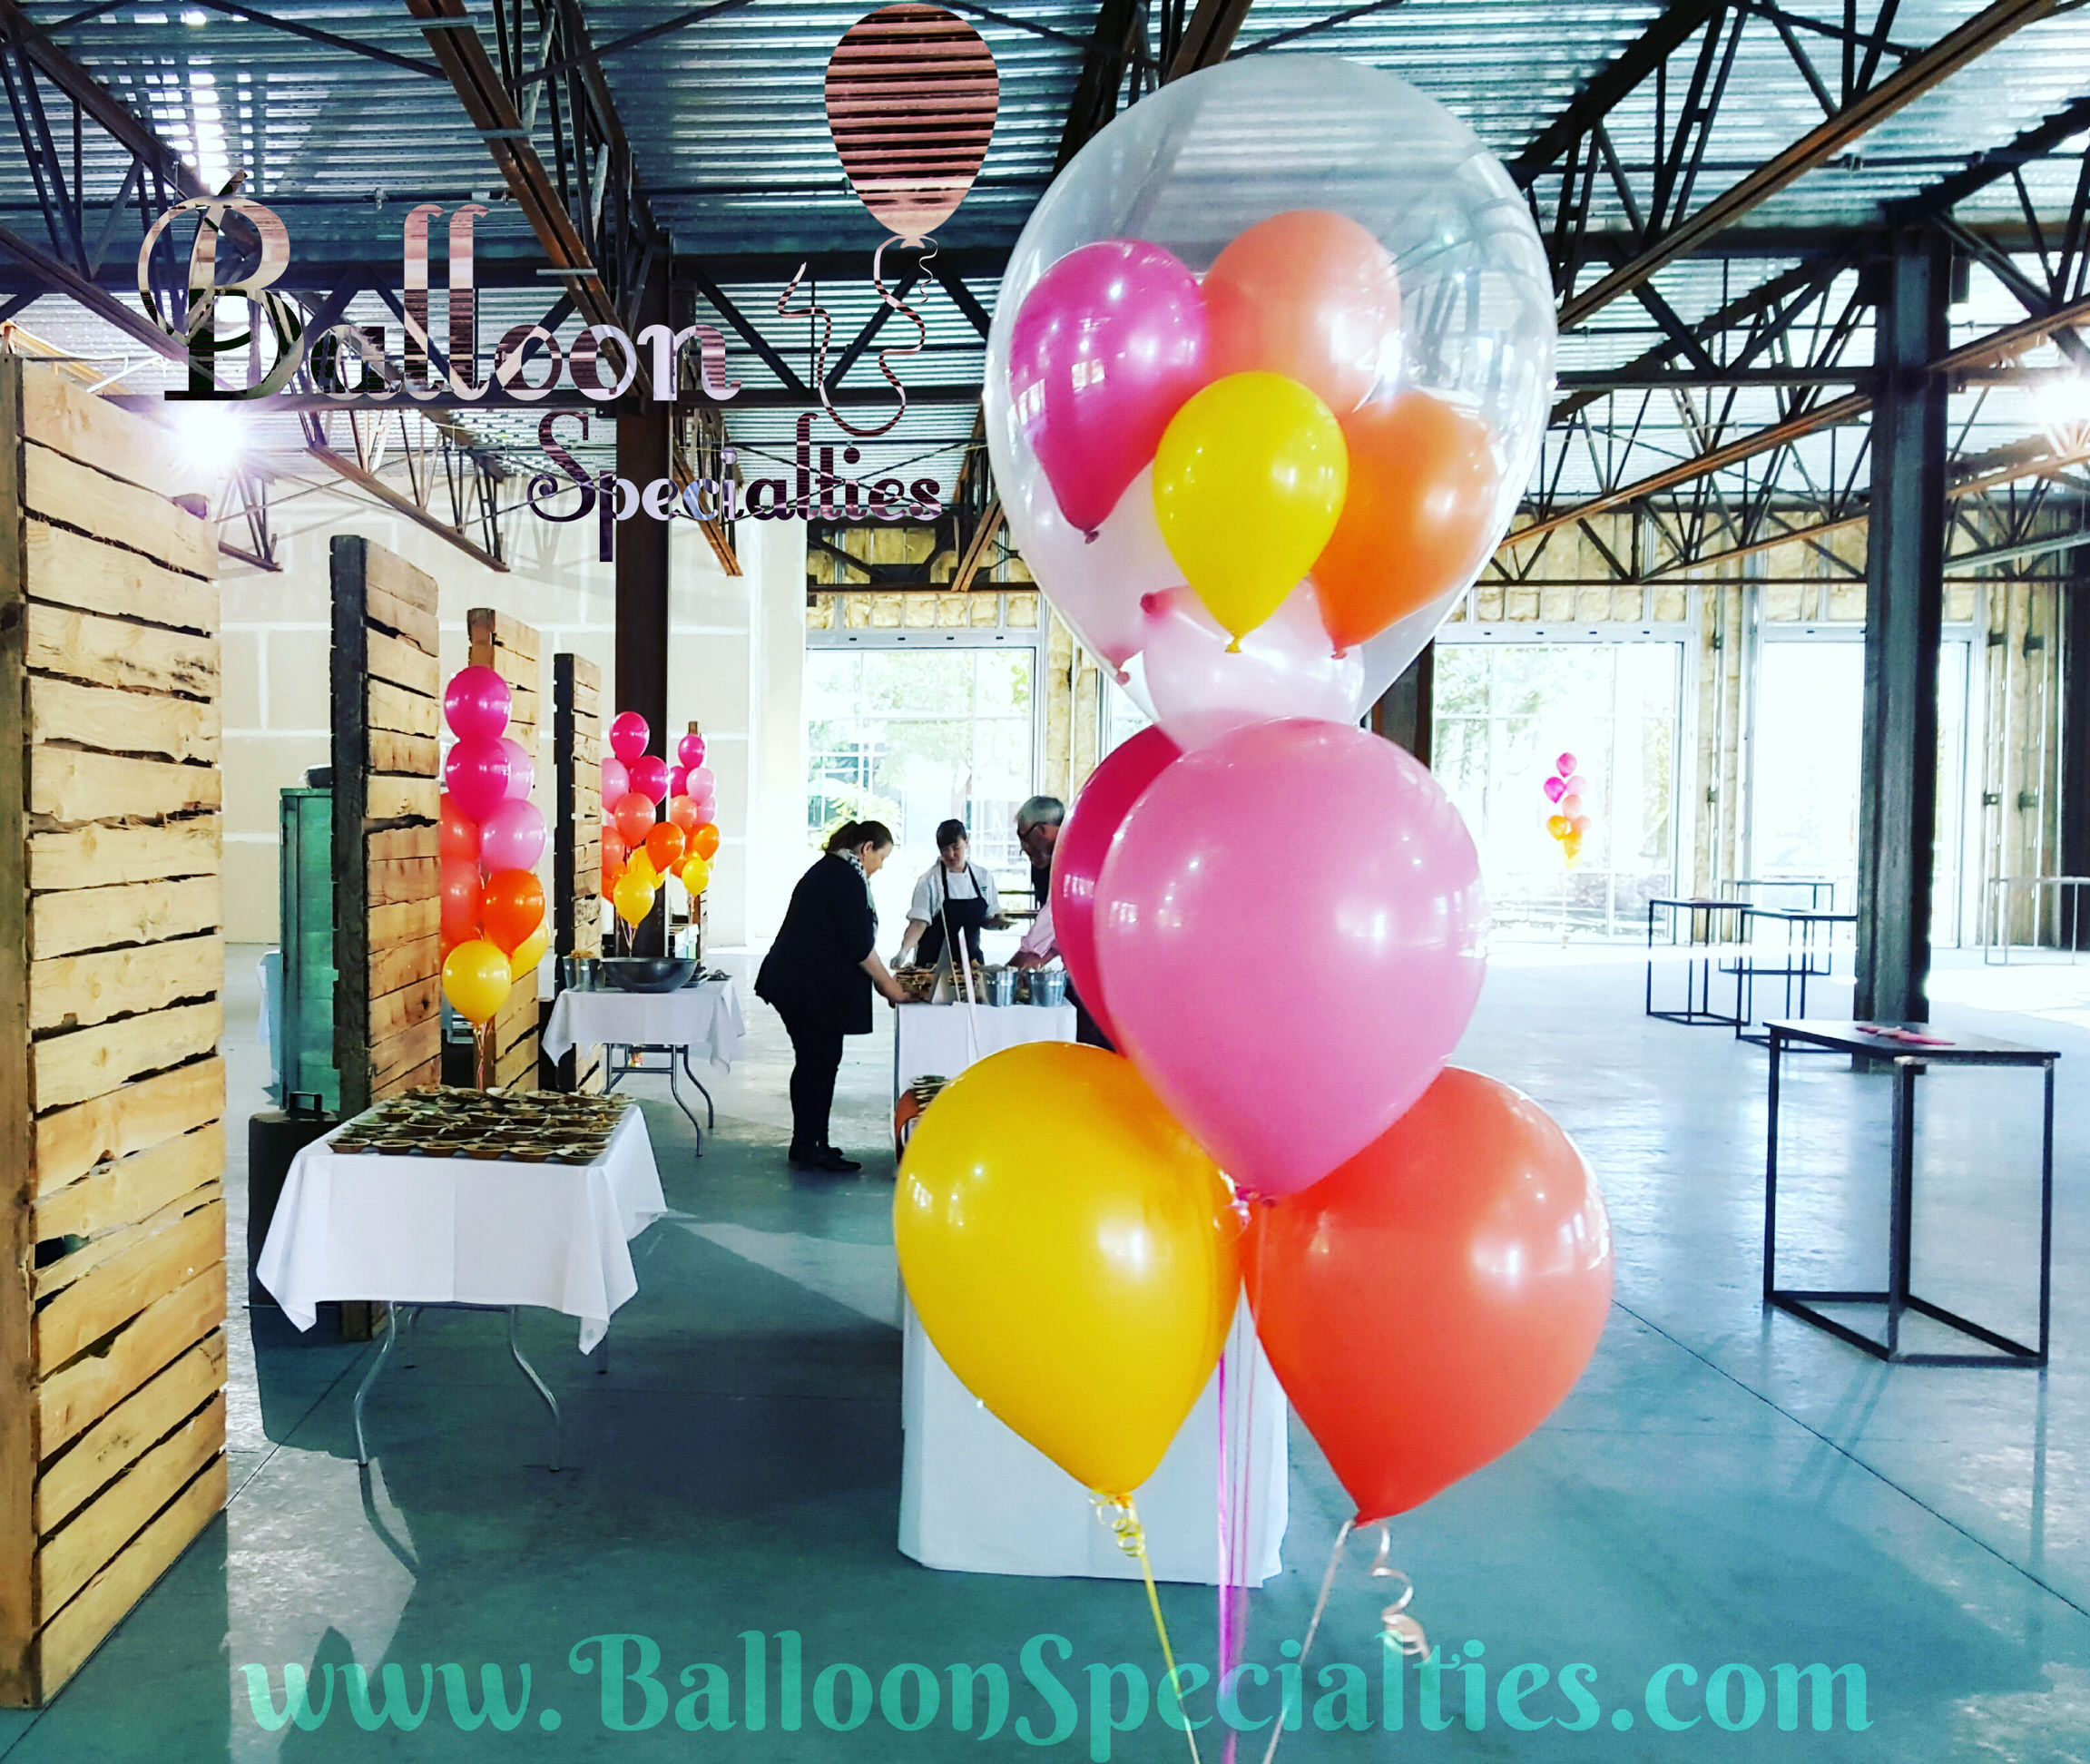 Gumball Set Branded _ Balloon Specialties.jpg